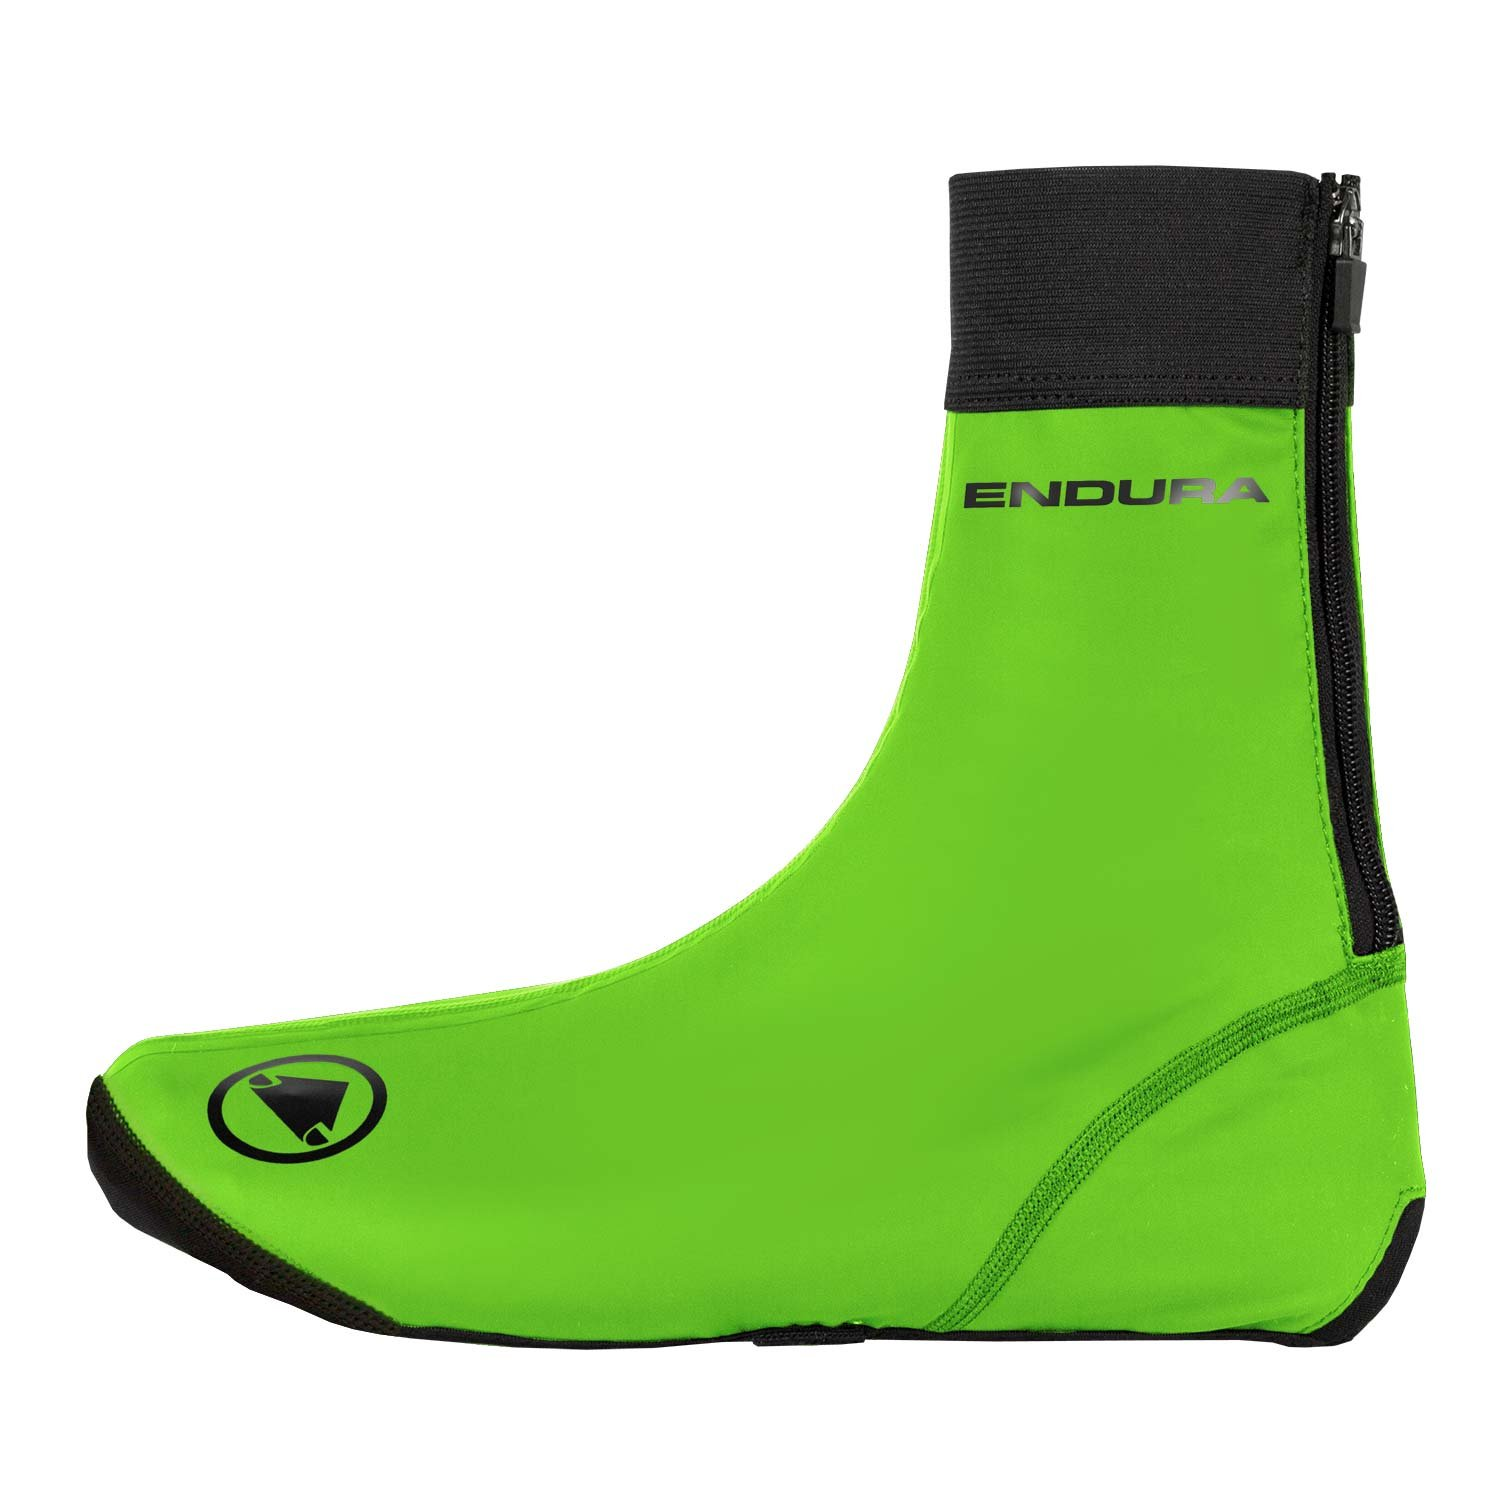 Endura FS260-Pro Slick Cycling Overshoe II for Road & Mountain Biking